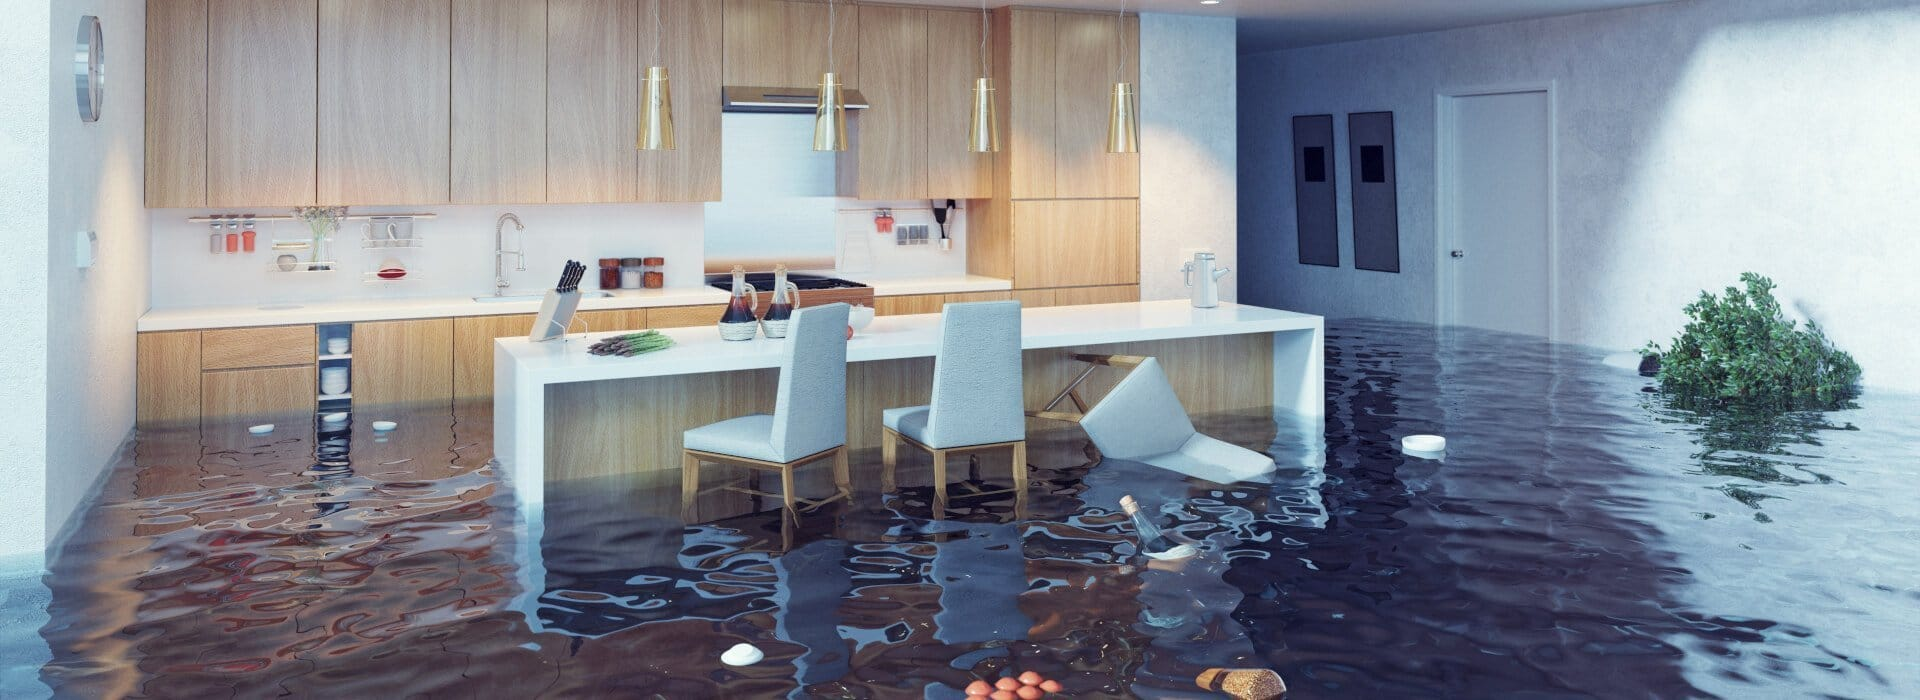 Flooded Kitchen - Sunshine Coast Plumbing and Gas Experts